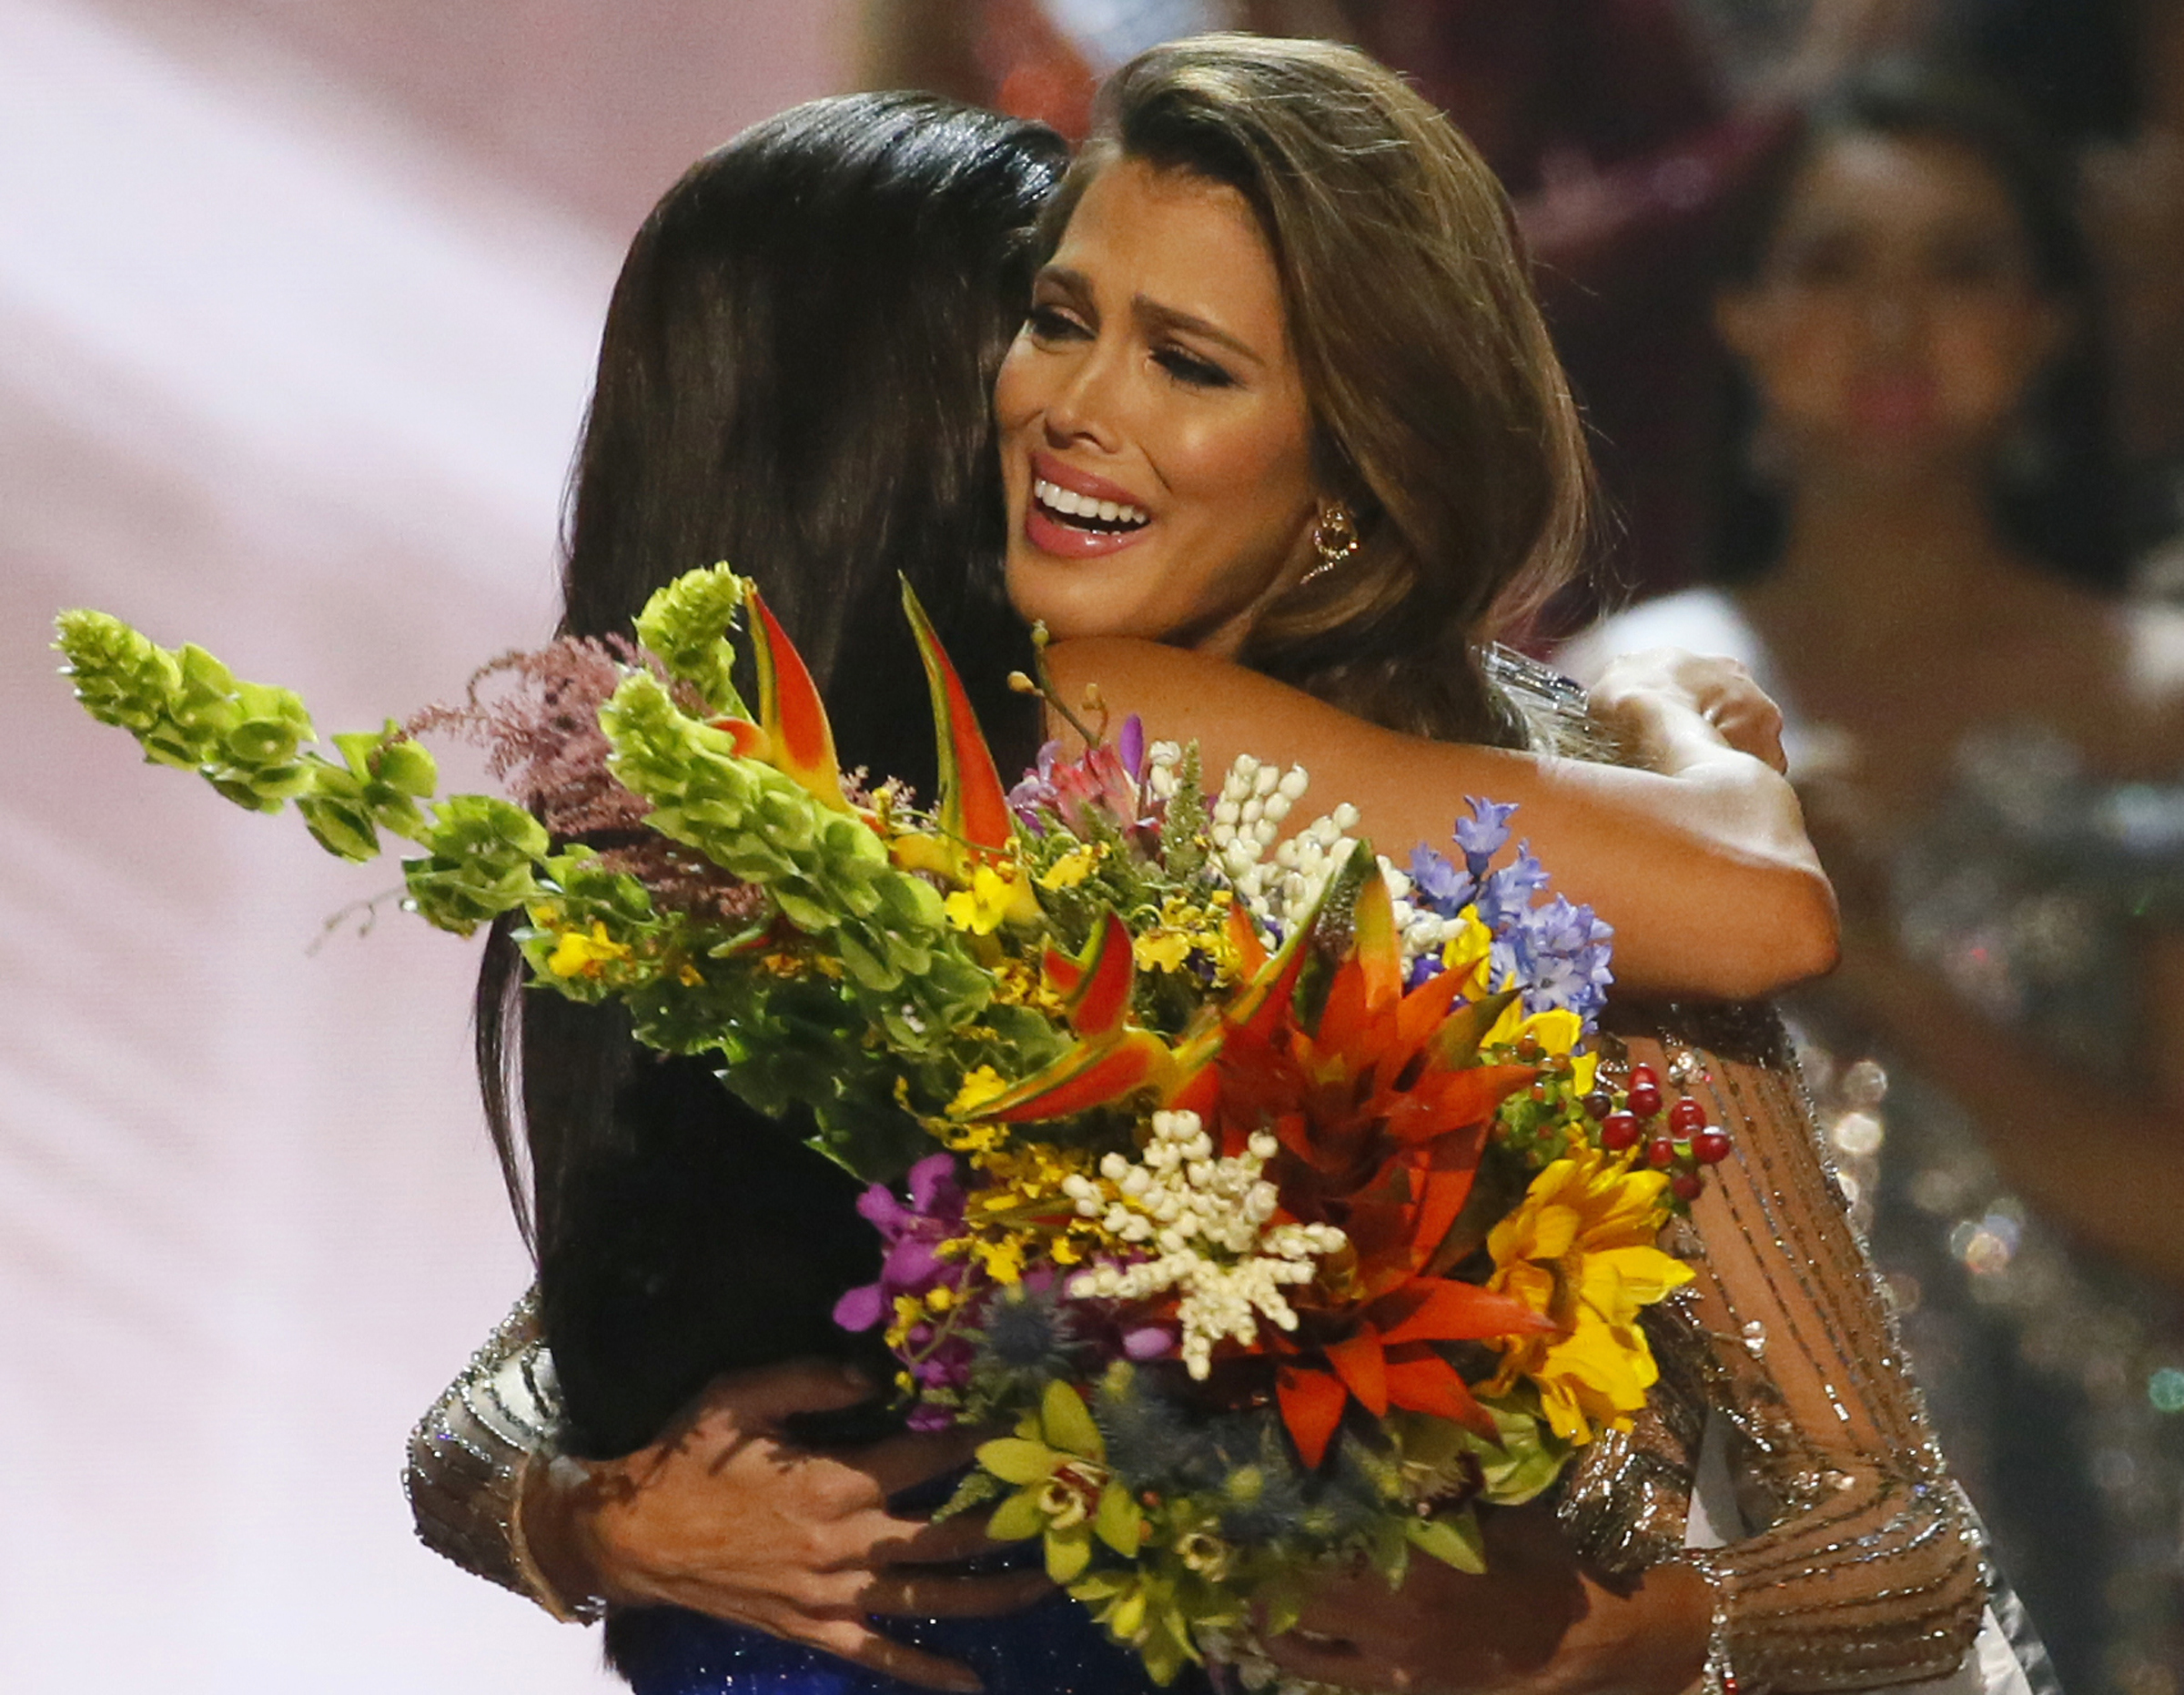 Miss Universe 2016 Iris Mittenaere (R) of France is hugged by Miss Universe 2015 Pia Wurtzbach following coronation at the Mall of Asia in suburban Pasay city, south of Manila, Philippines on Jan. 30, 2017. (AP Photo/Bullit Marquez)